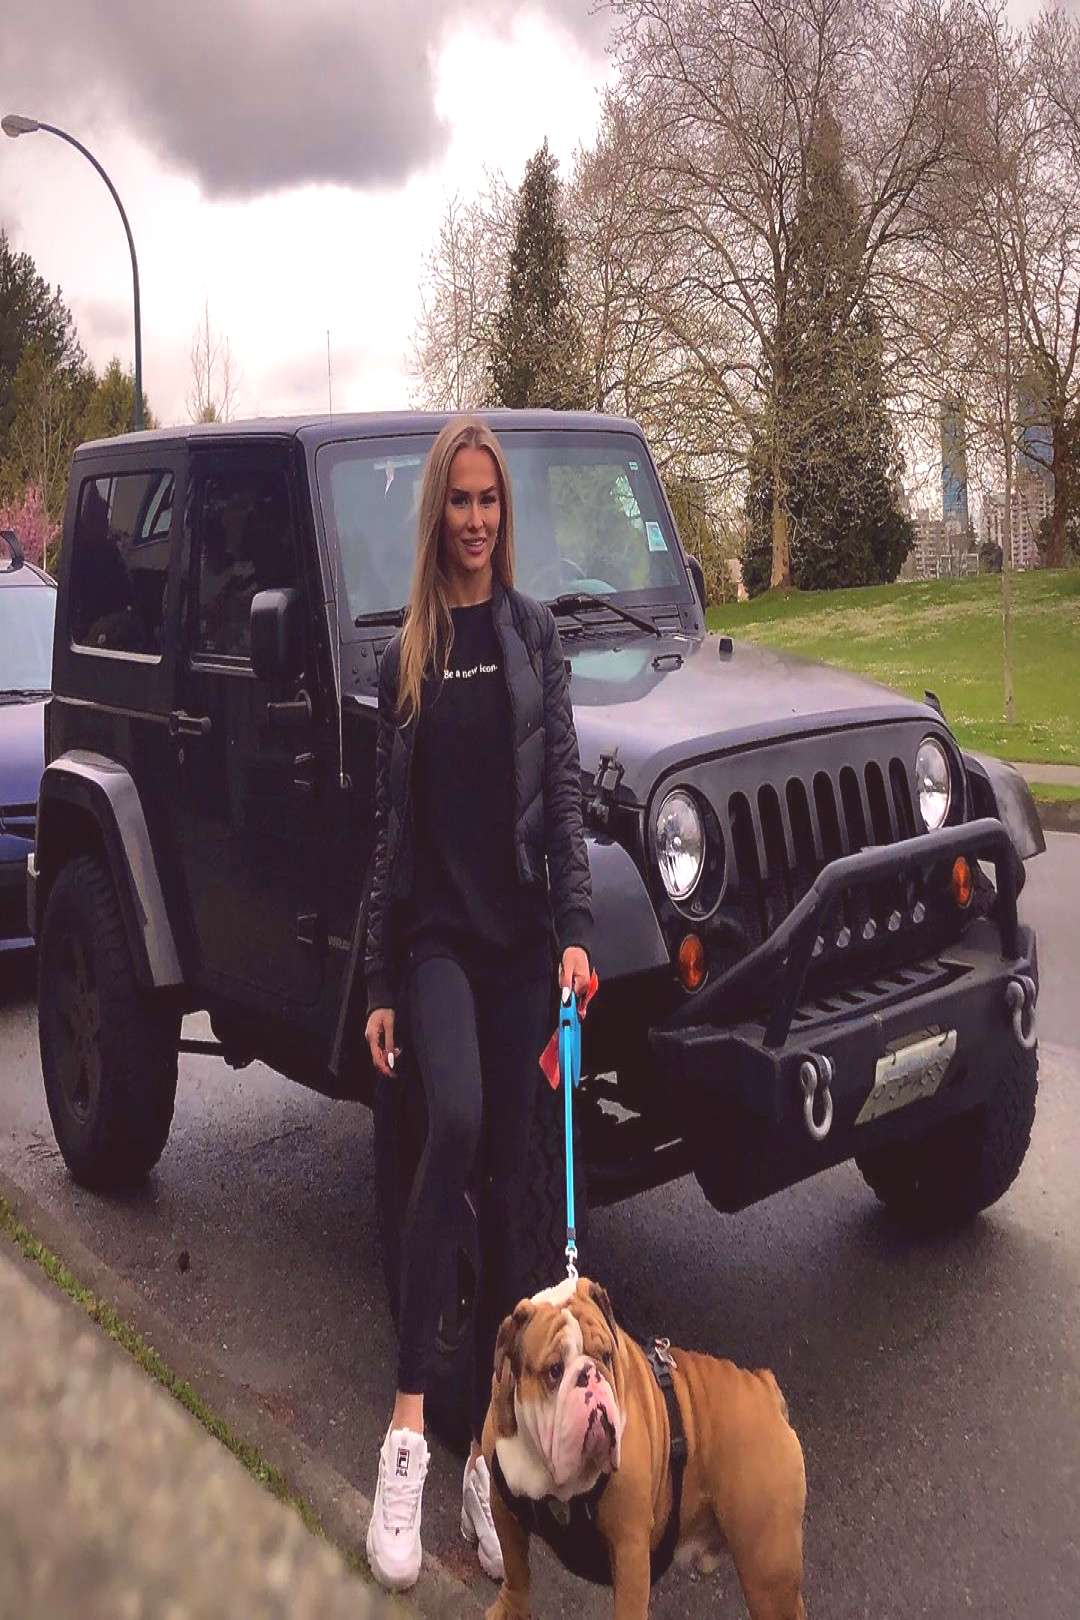 Victoria Hermann on April 23 2020 addicts and looks 1 person dog